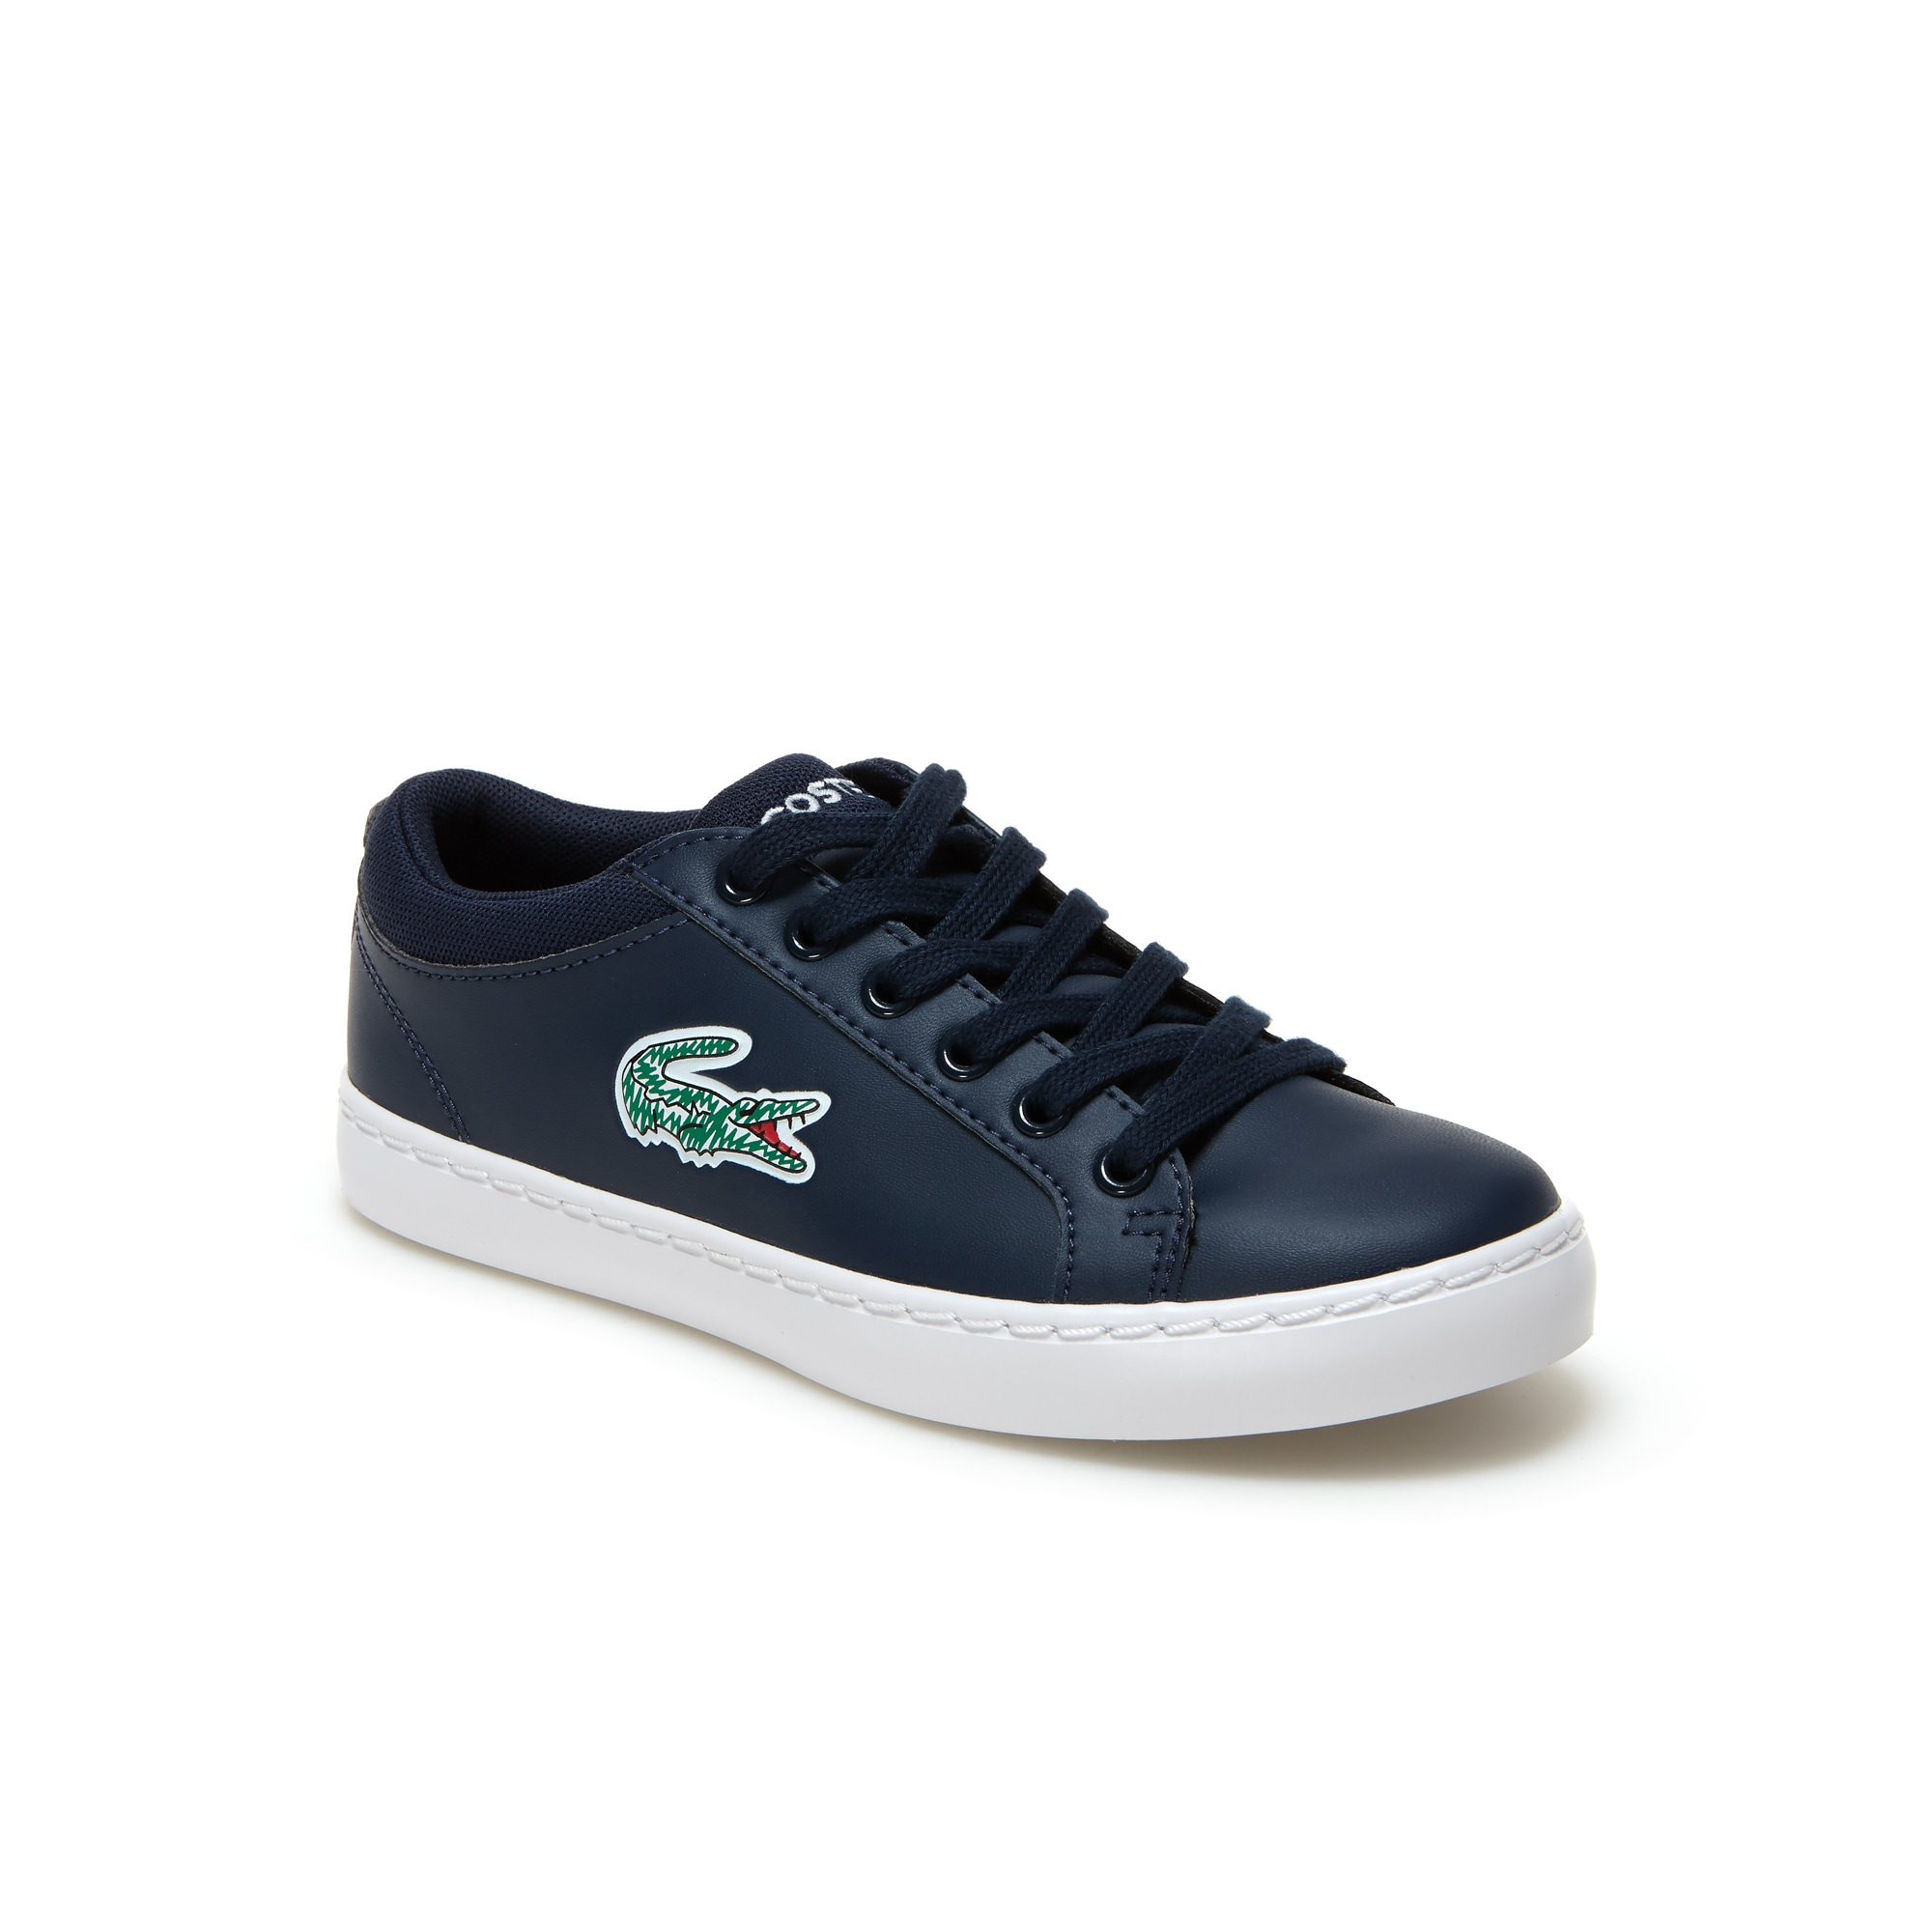 Sneakers Straightset Lace bambini in similpelle